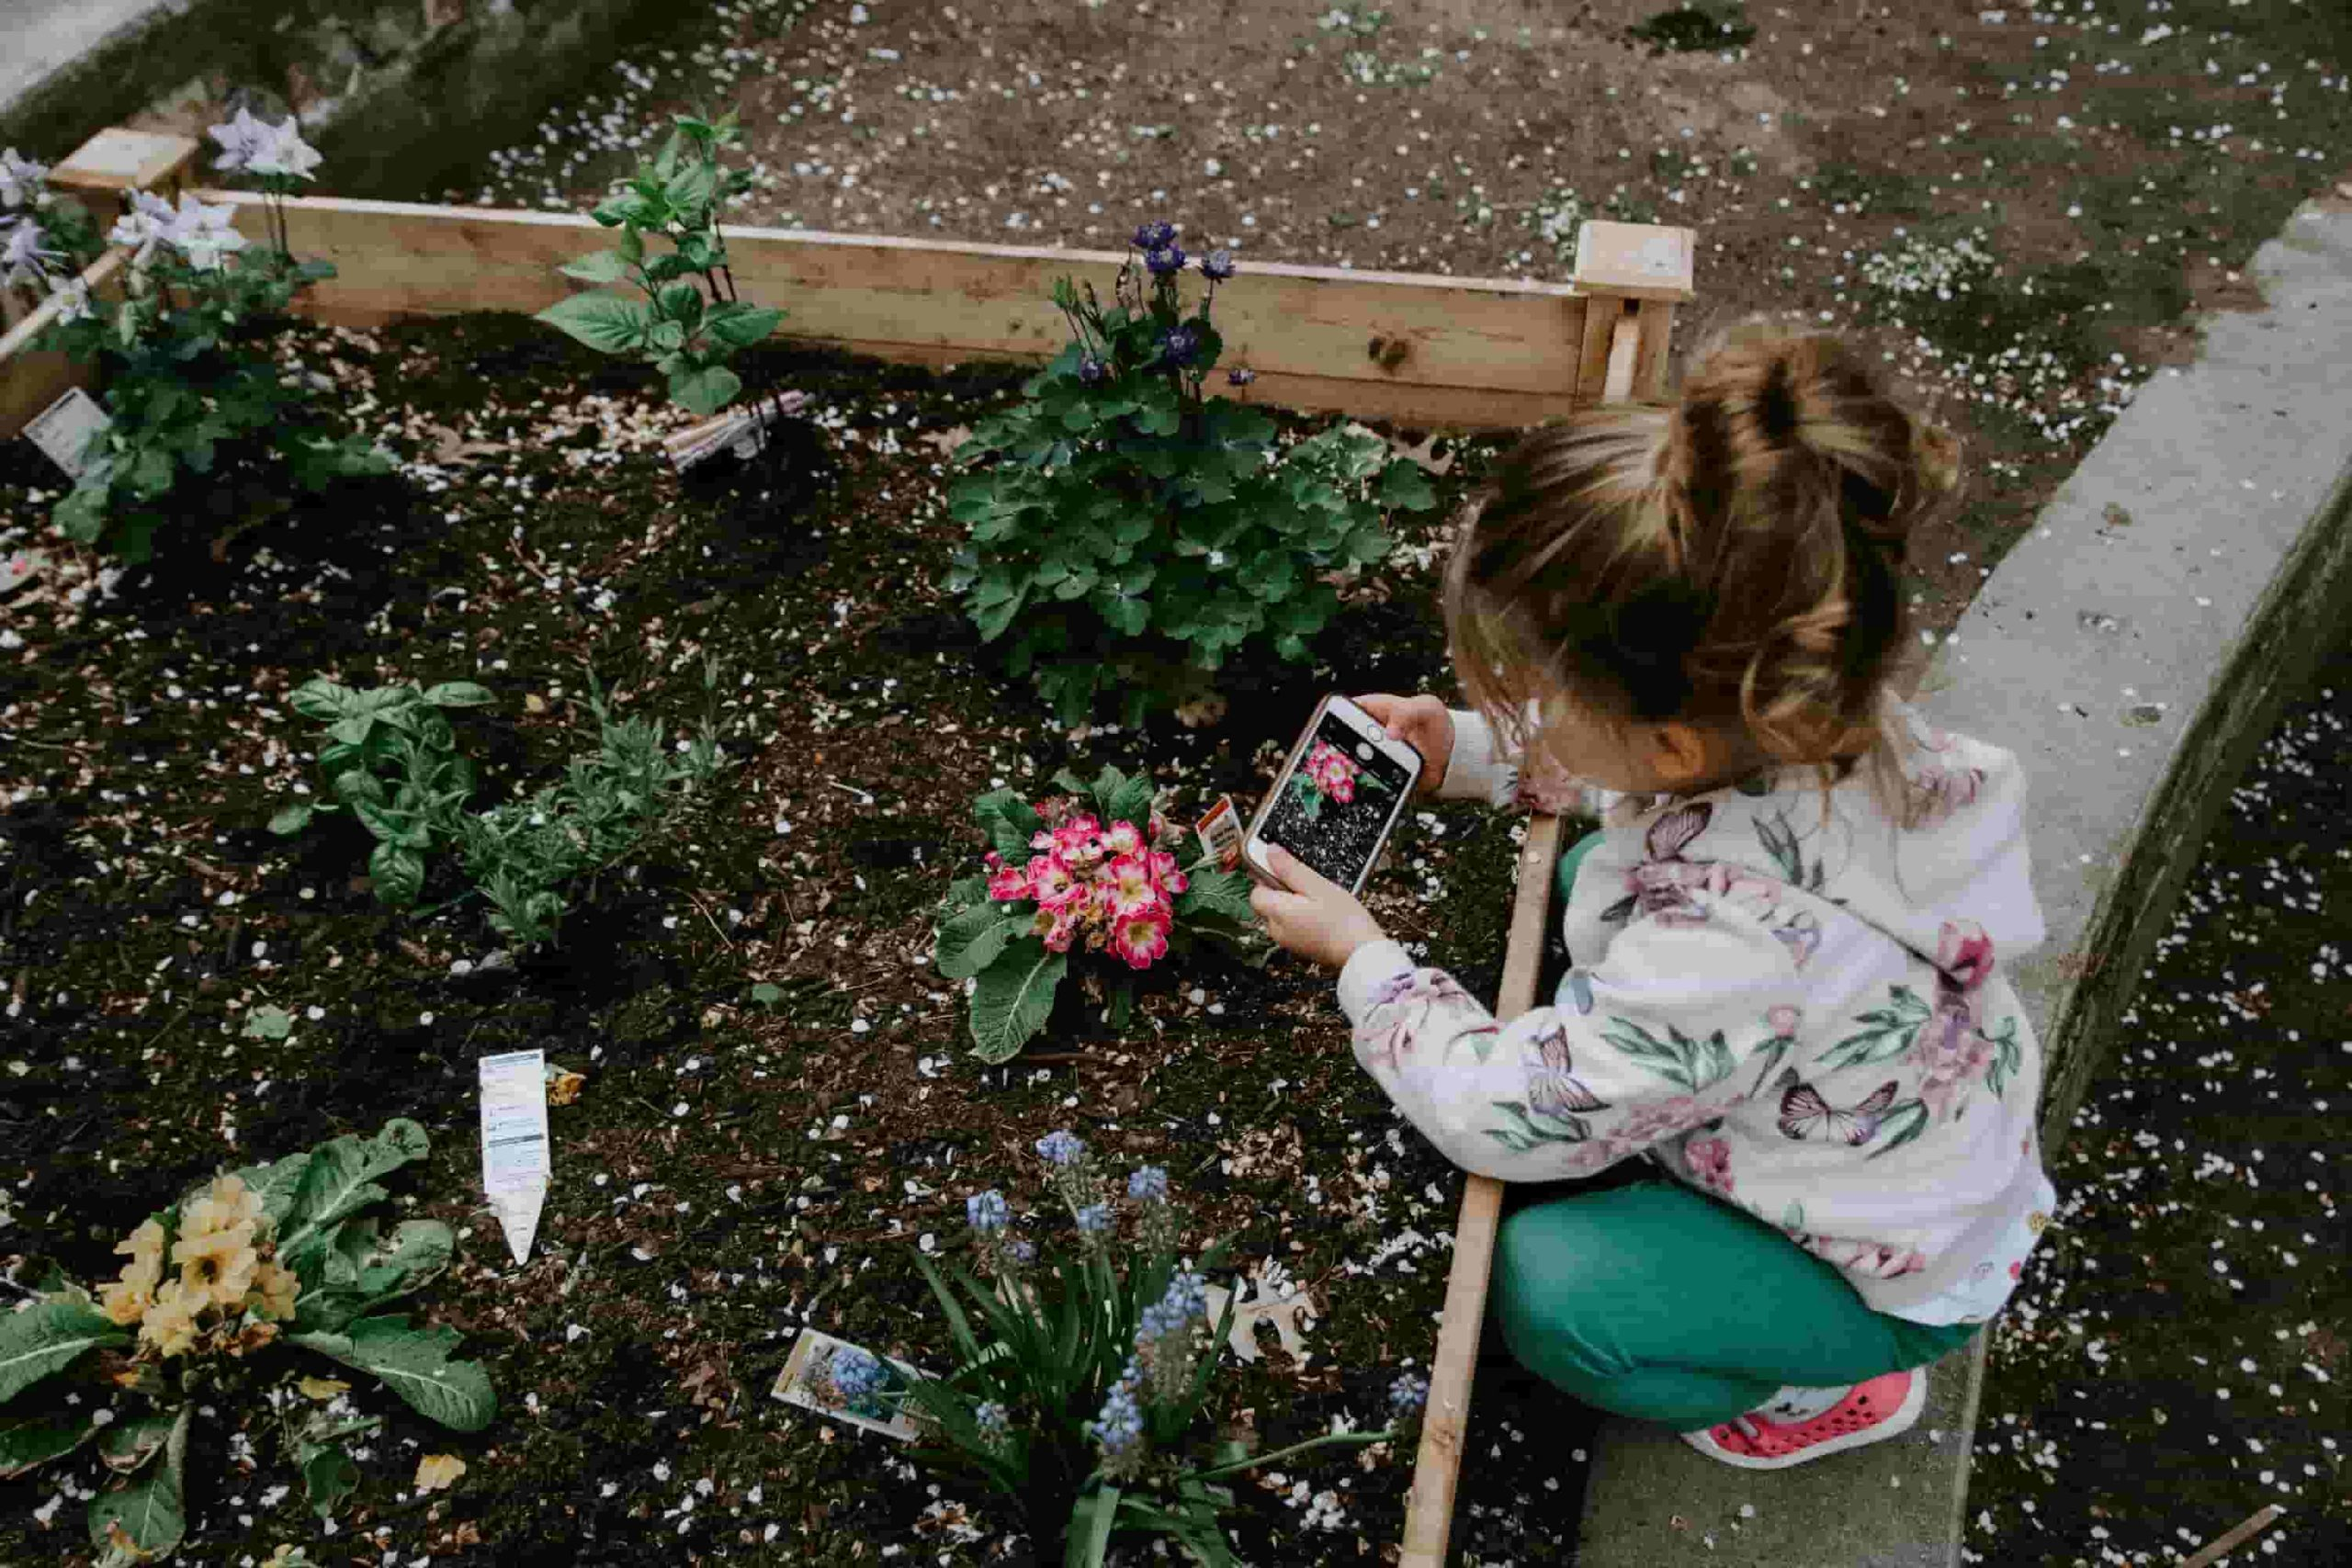 child crouching in garden, taking a photo of flowers